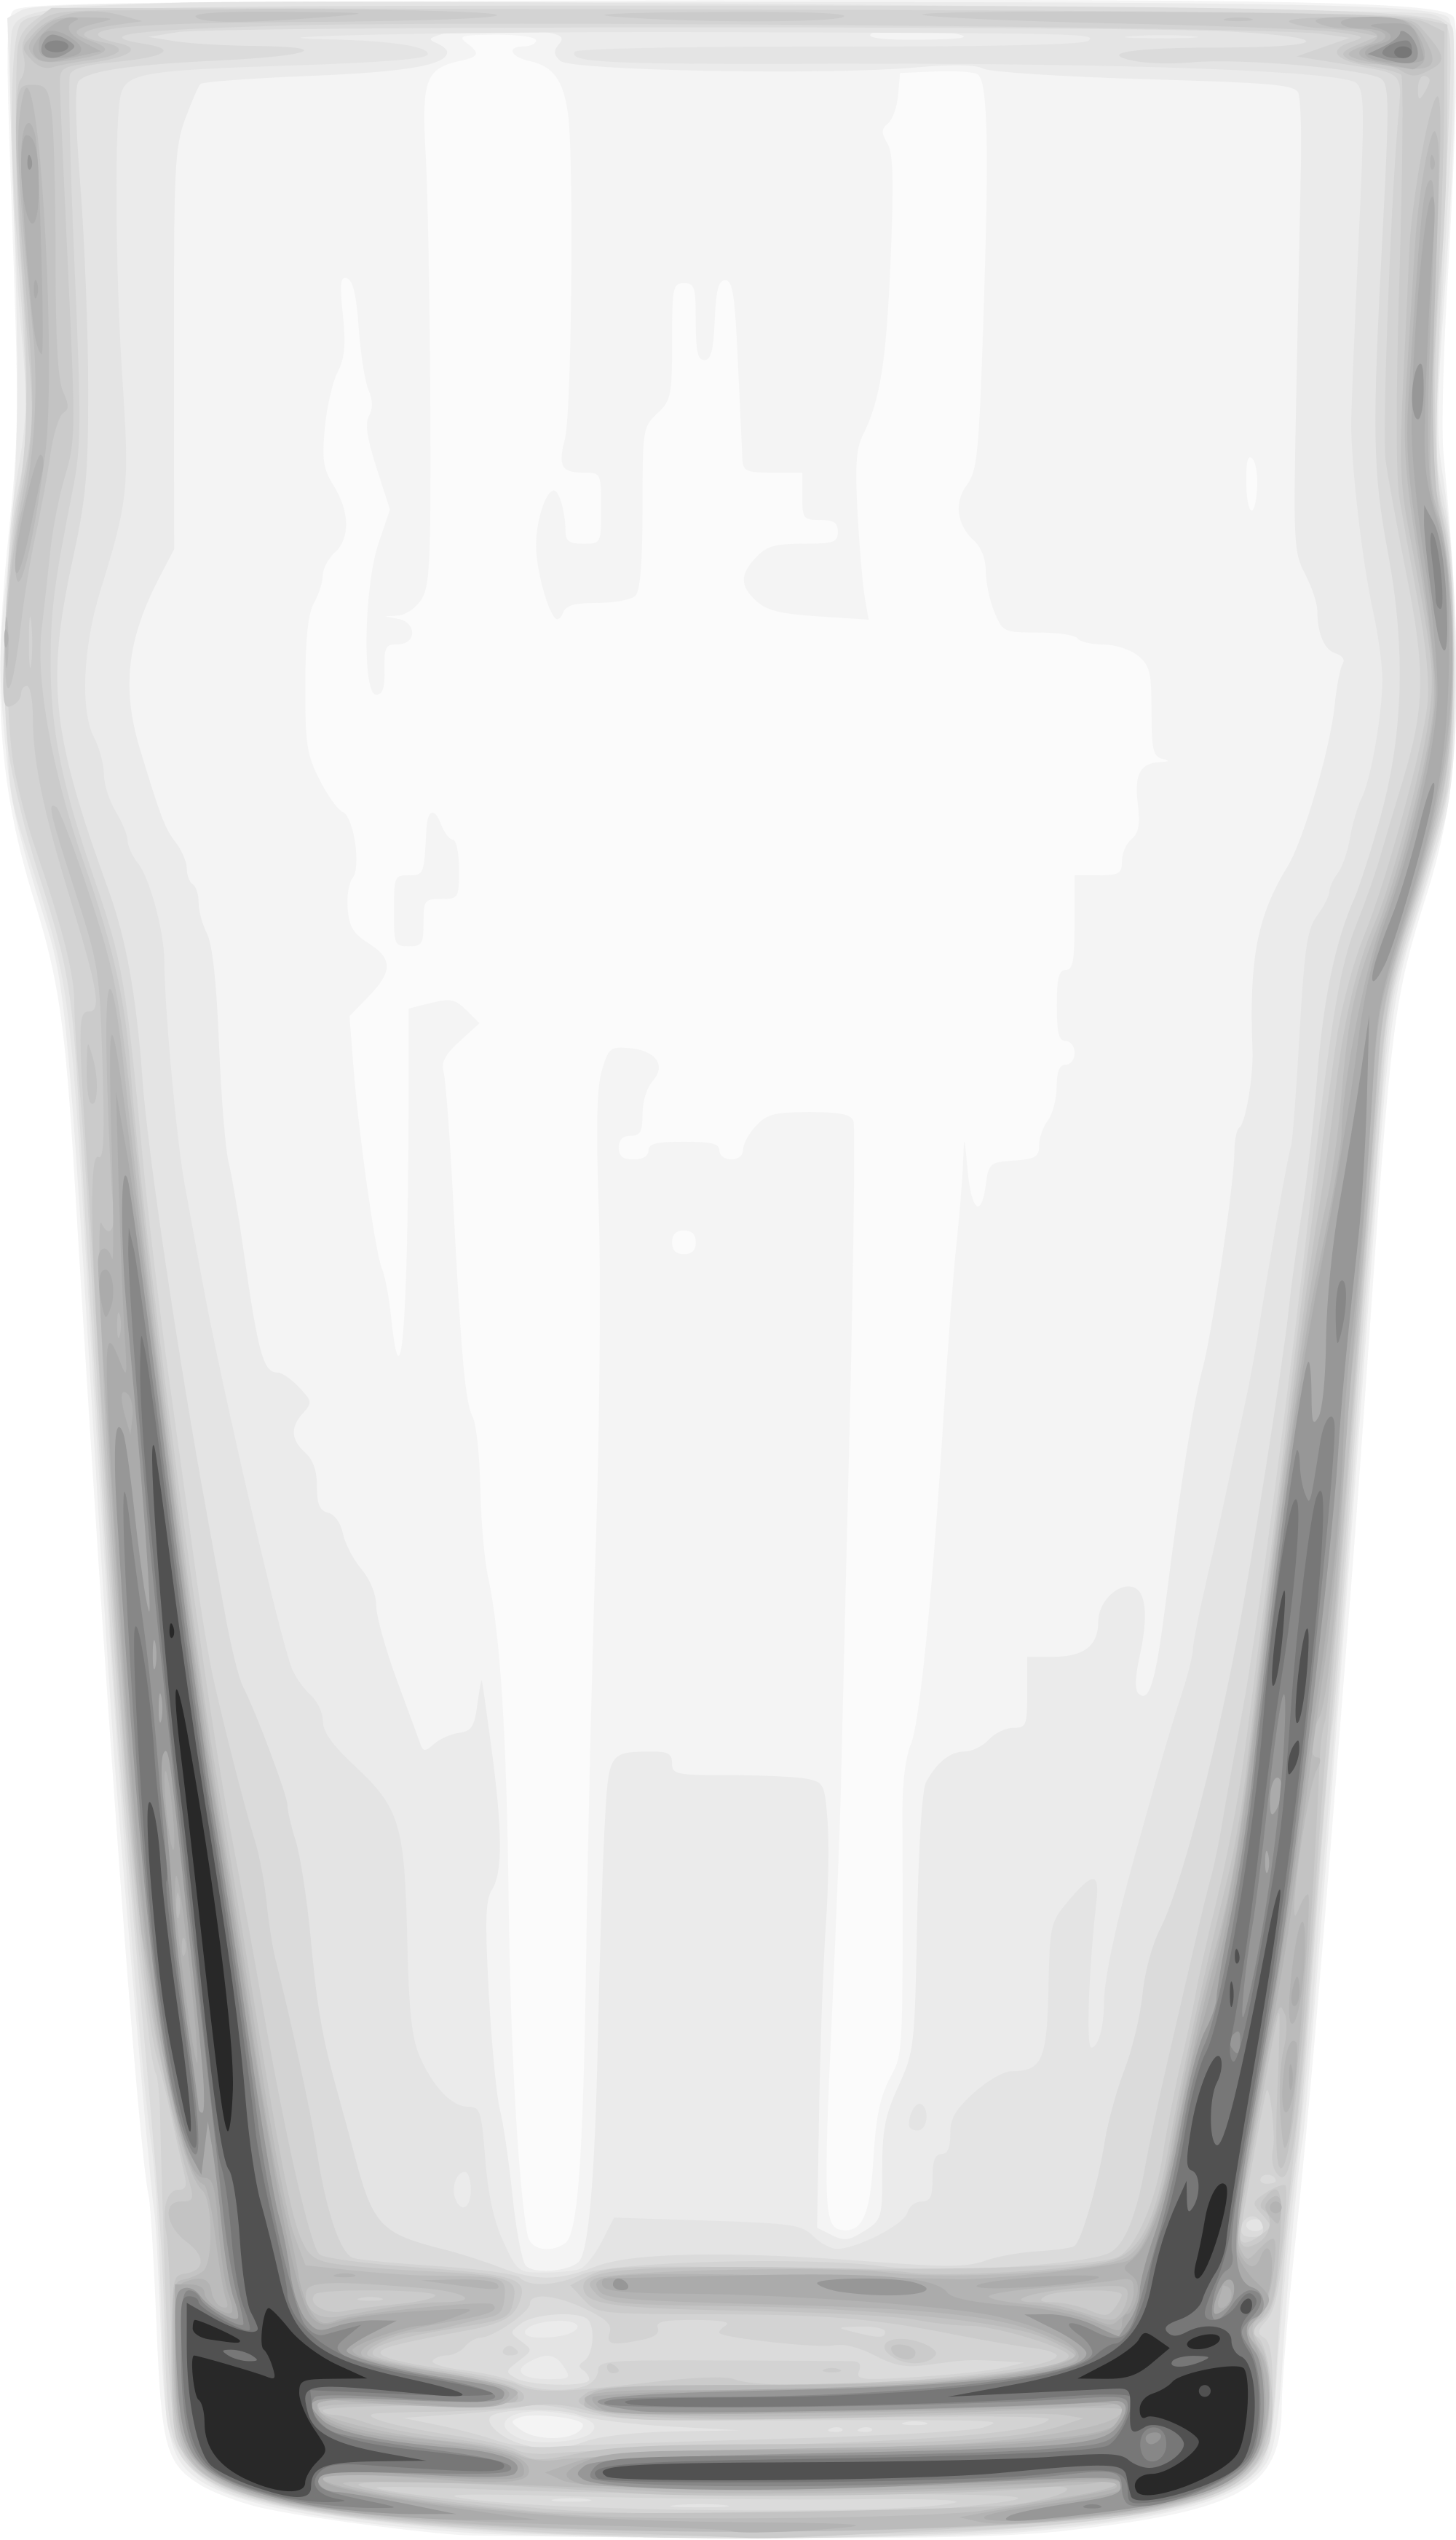 Clear glass png. Transparent image arts